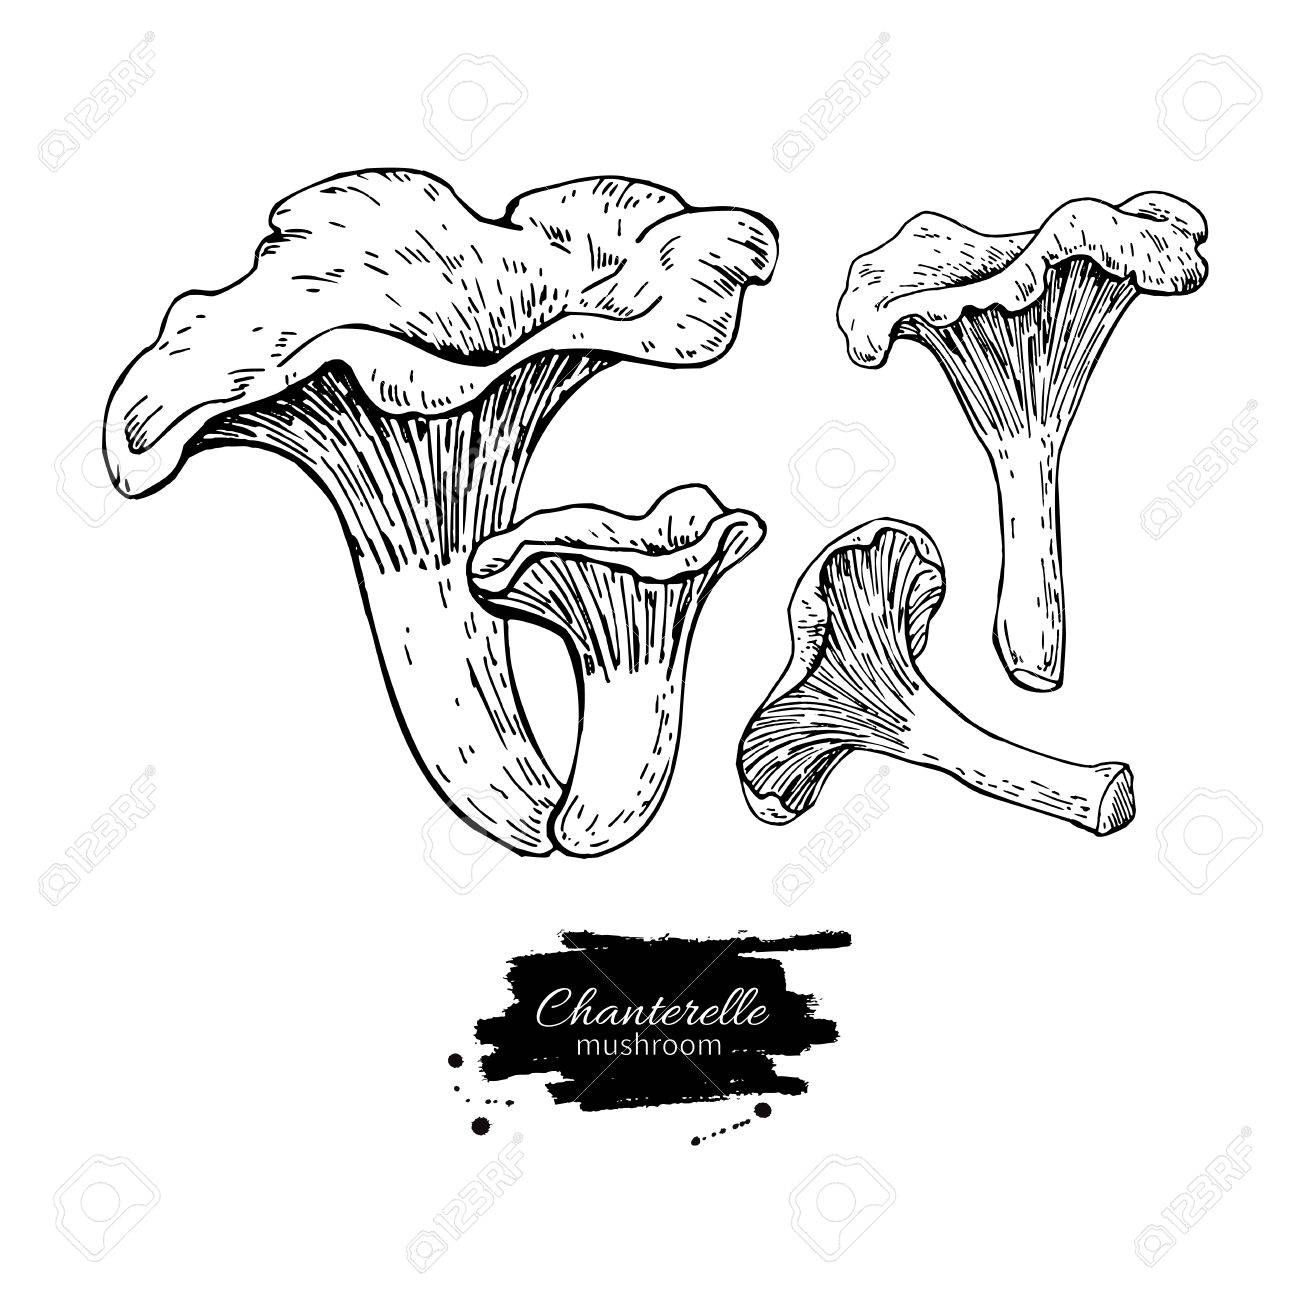 1300x1300 Chanterelle Mushroom Hand Drawn Vector Illustration Set. Sketch